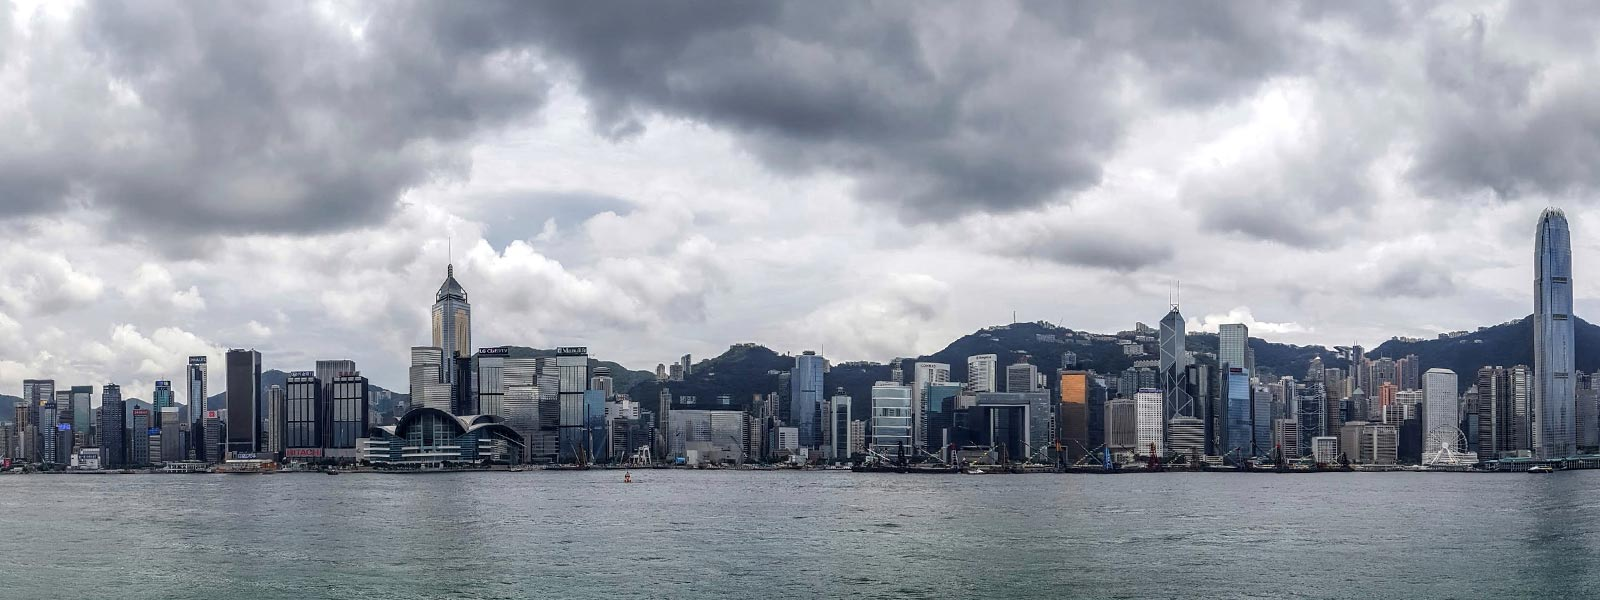 The City of Hong Kong Skyline